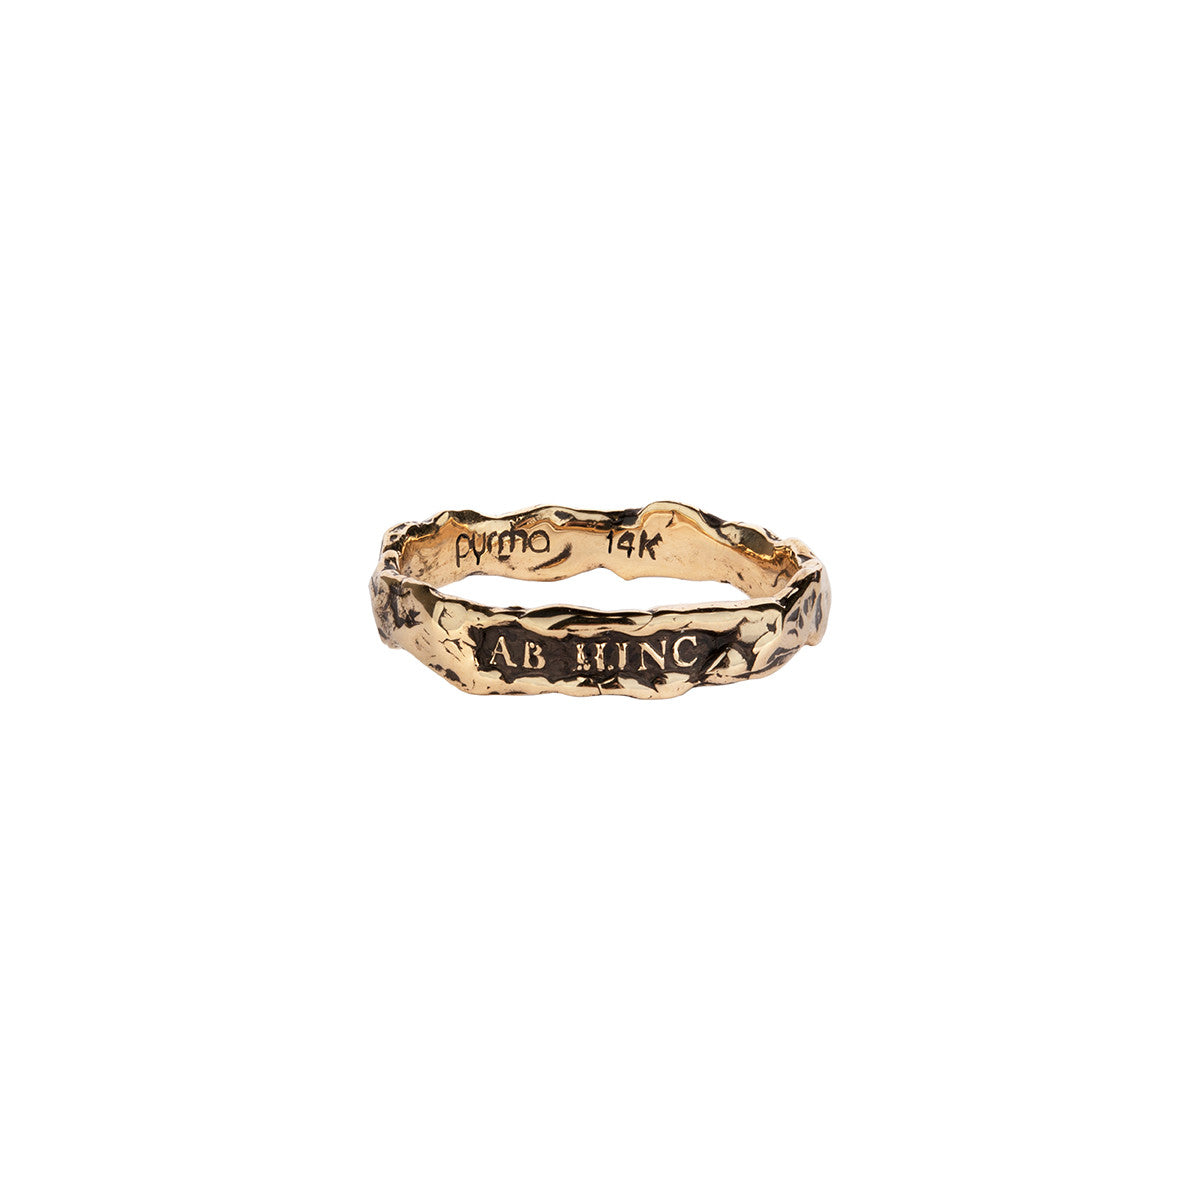 Ab Hinc (From Here On)  Narrow 14K Gold Textured Band Ring